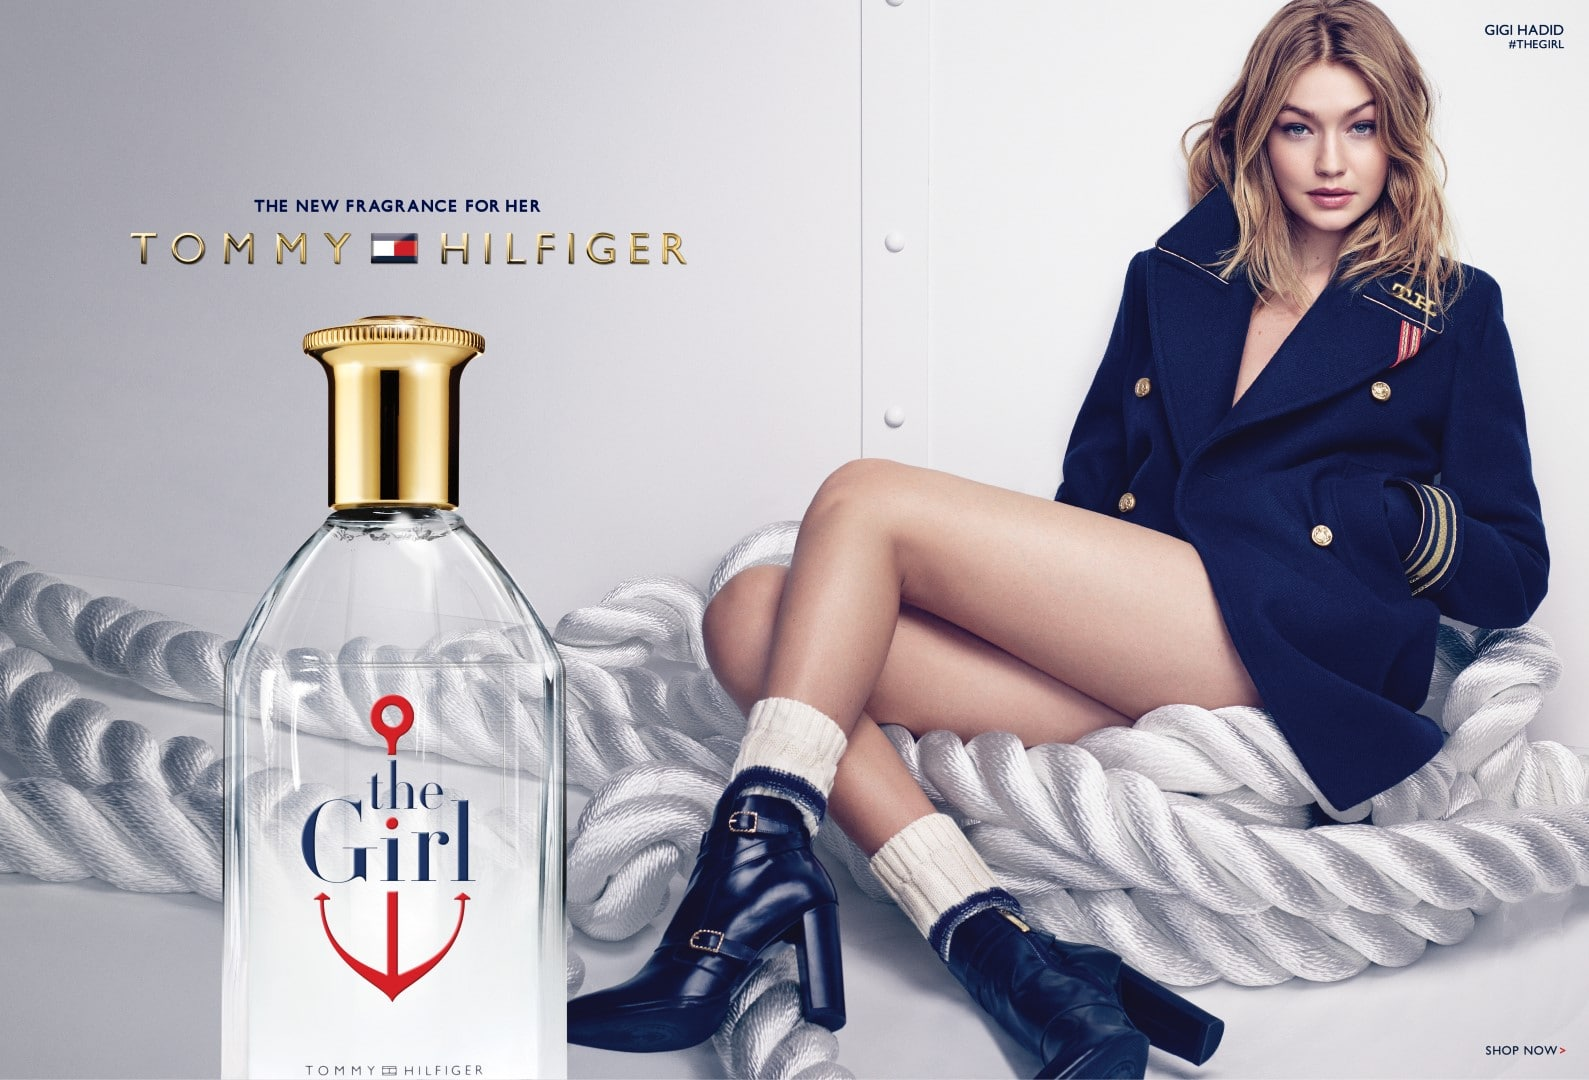 The Girl, la nuova fragranza di Tommy Hilfiger